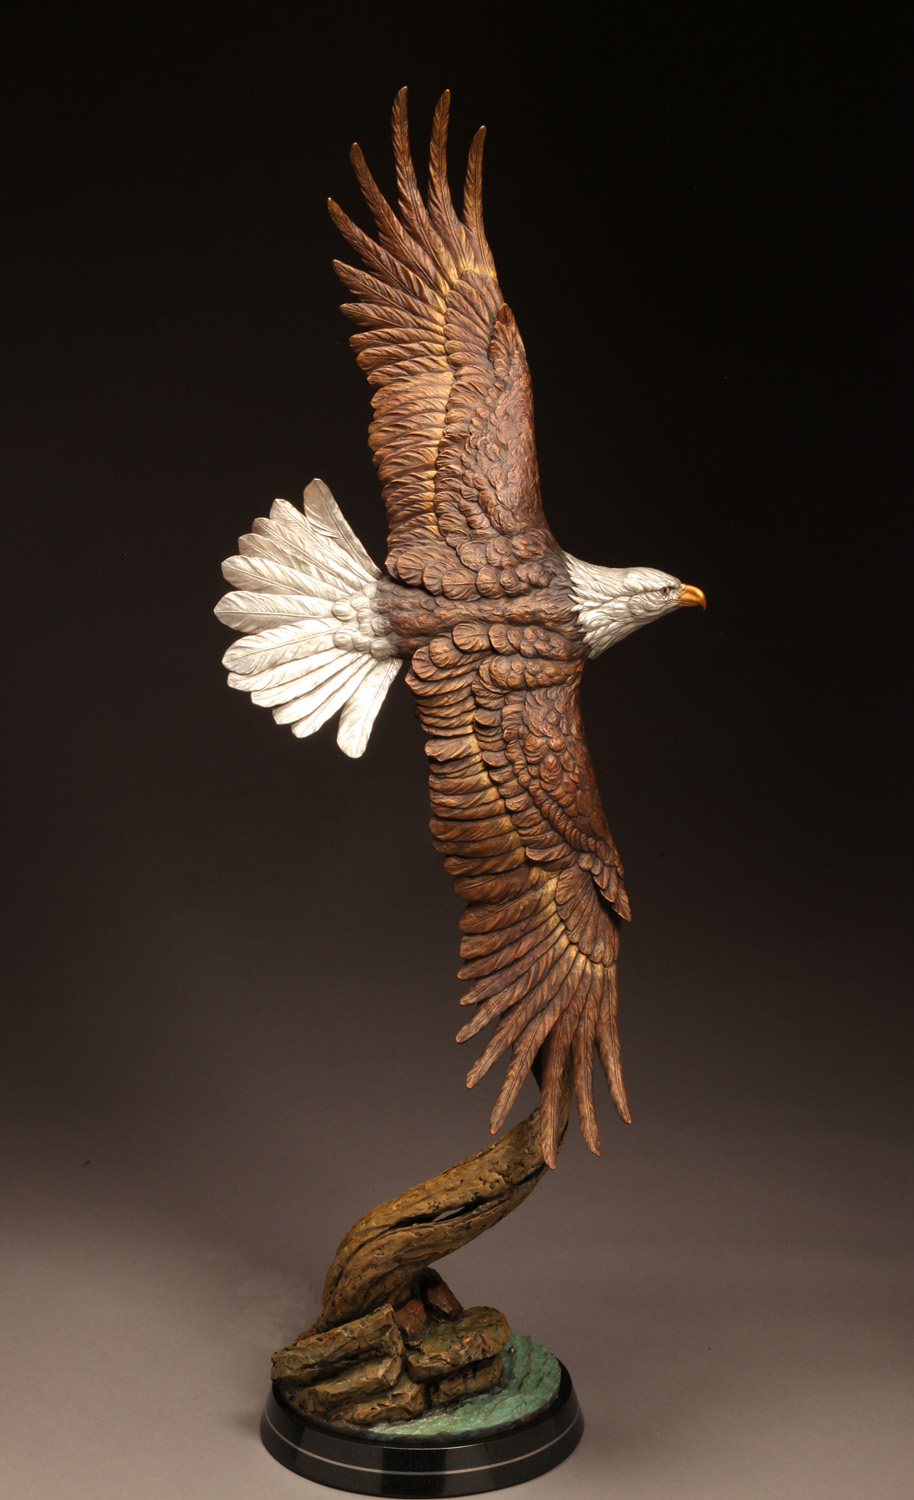 "Soaring Majesty | 52""x 19"" x 18"" 